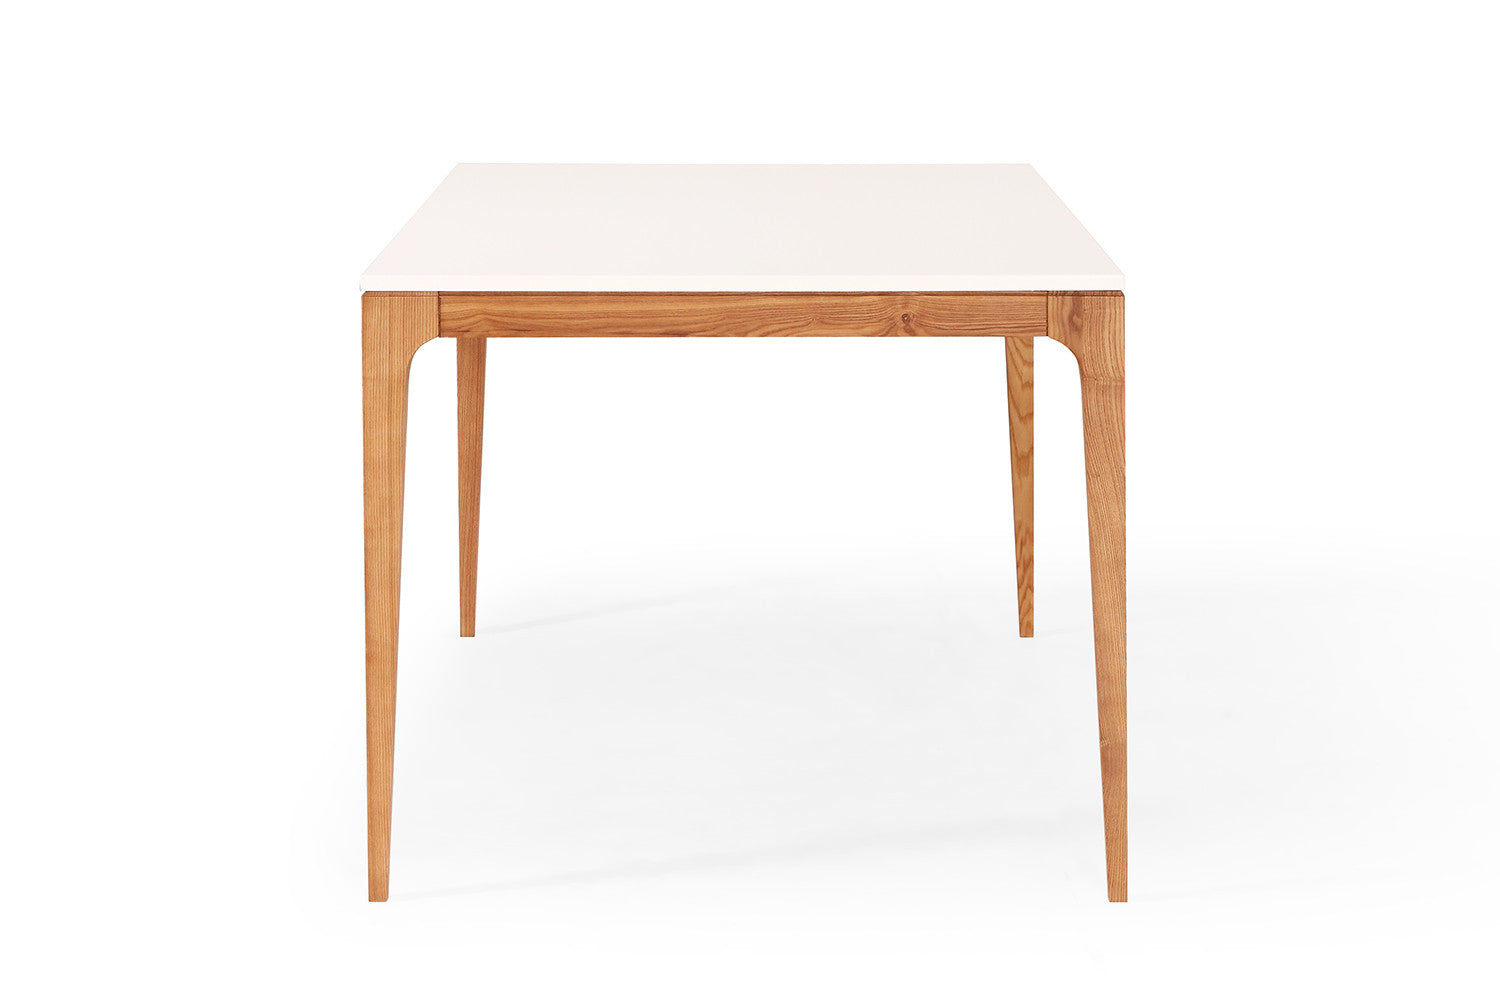 table de repas design scandinave blanche et bois maggia. Black Bedroom Furniture Sets. Home Design Ideas